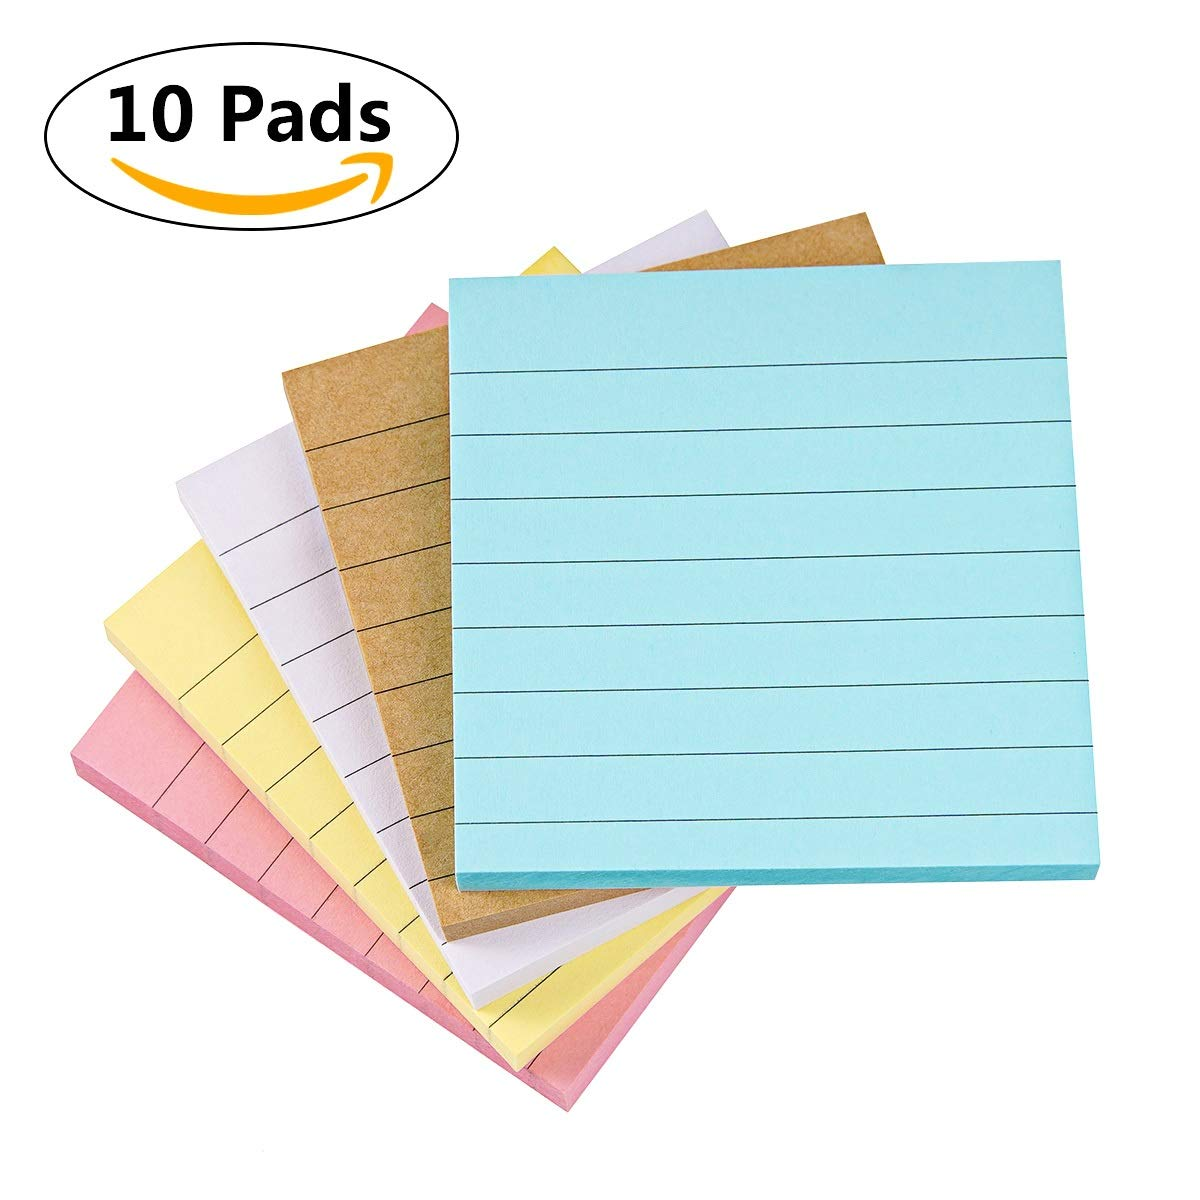 Sticky Notes Lined 3x3, 10 Pads/Pack, 70 Sheets/Pad, 5 Colors, Individually Package Colorful Self-Stick Notes for Home, Office by UDOIT (Image #1)